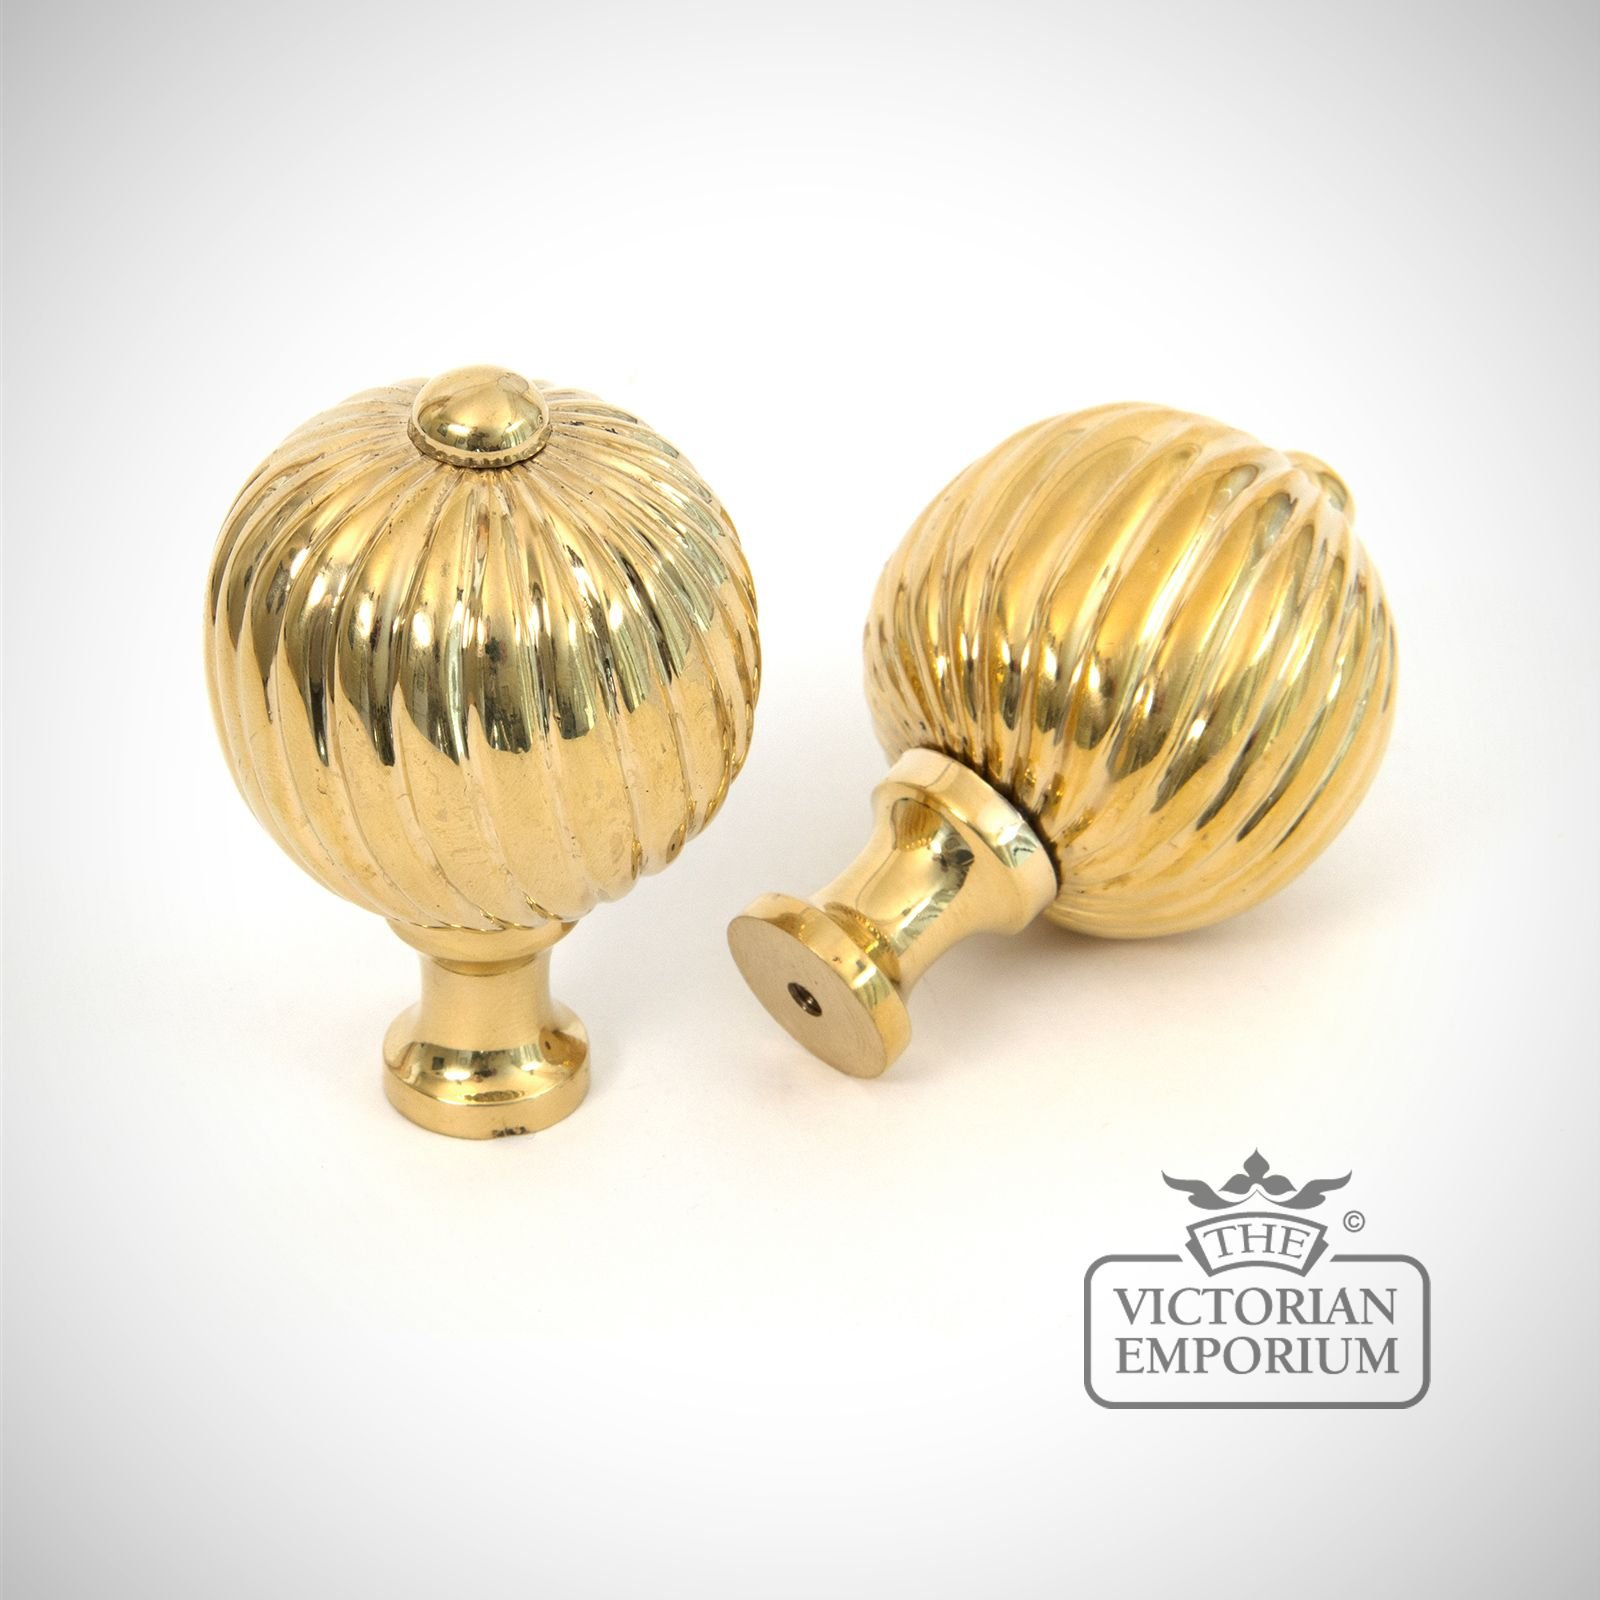 Polished Brass Spiral Cabinet Knob